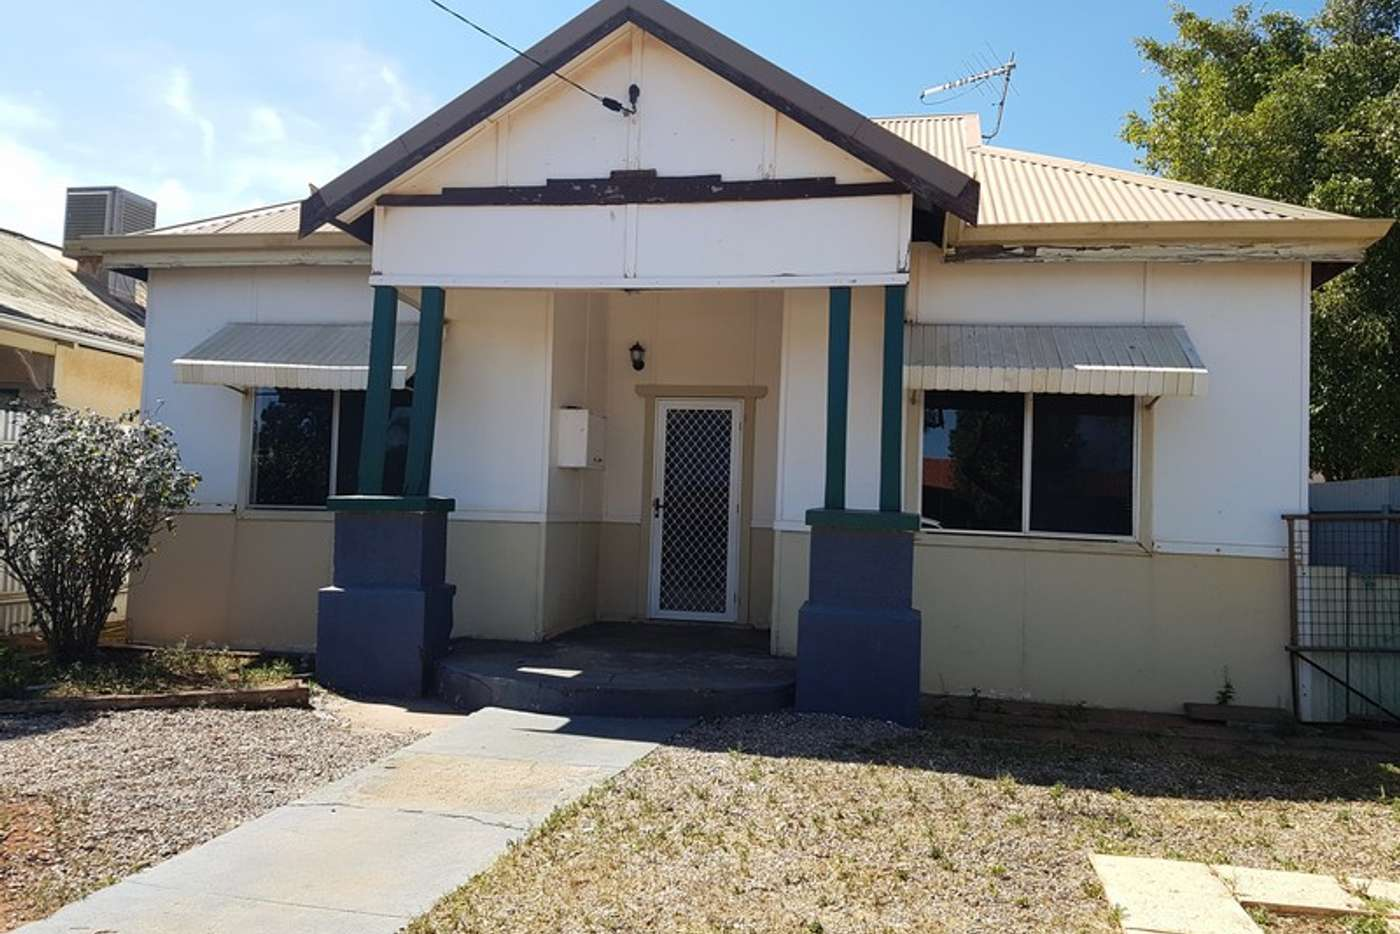 Main view of Homely house listing, 85A Wilson Street, Kalgoorlie WA 6430